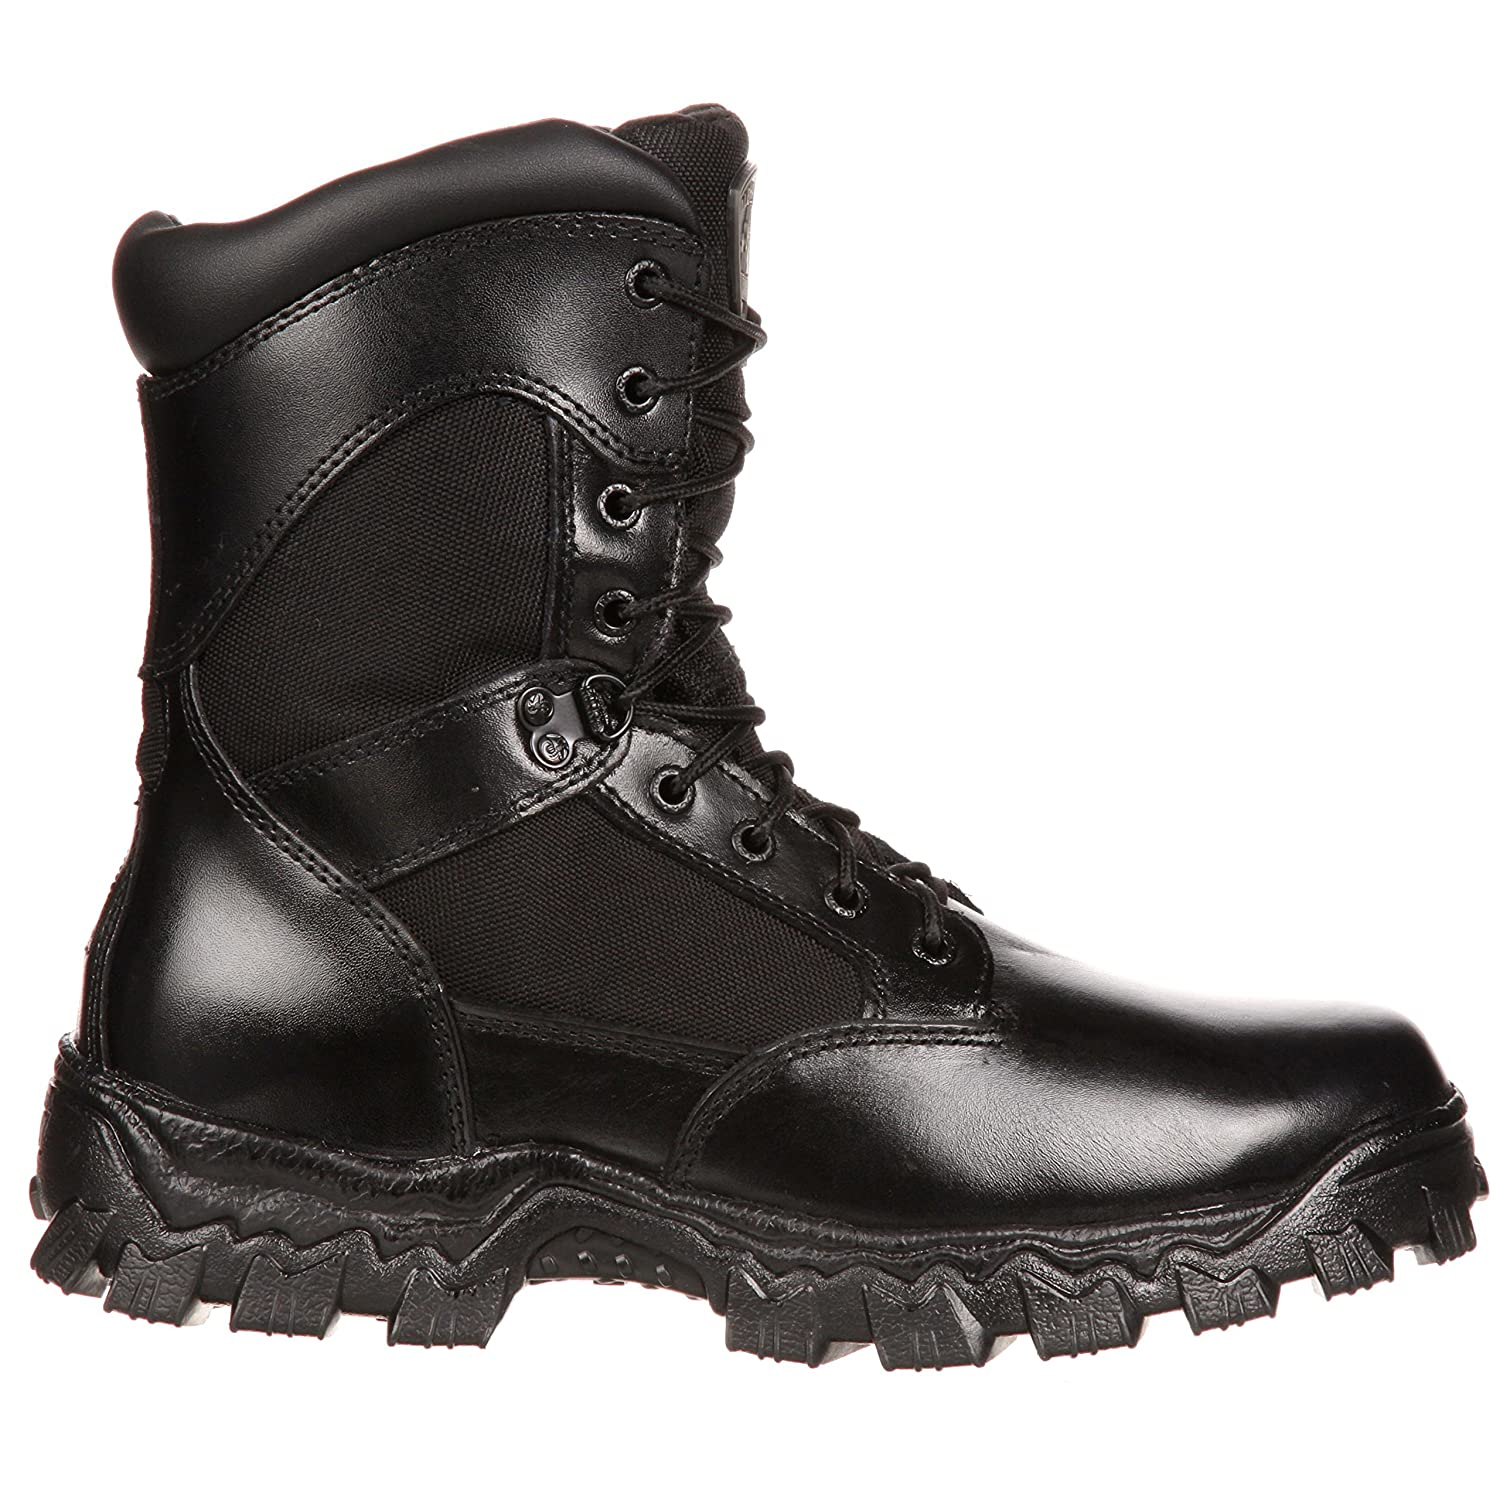 ab8250e9122 Rocky Men's Alpha Force Side Zipper Waterproof Insulated Duty Boot-RKYD011